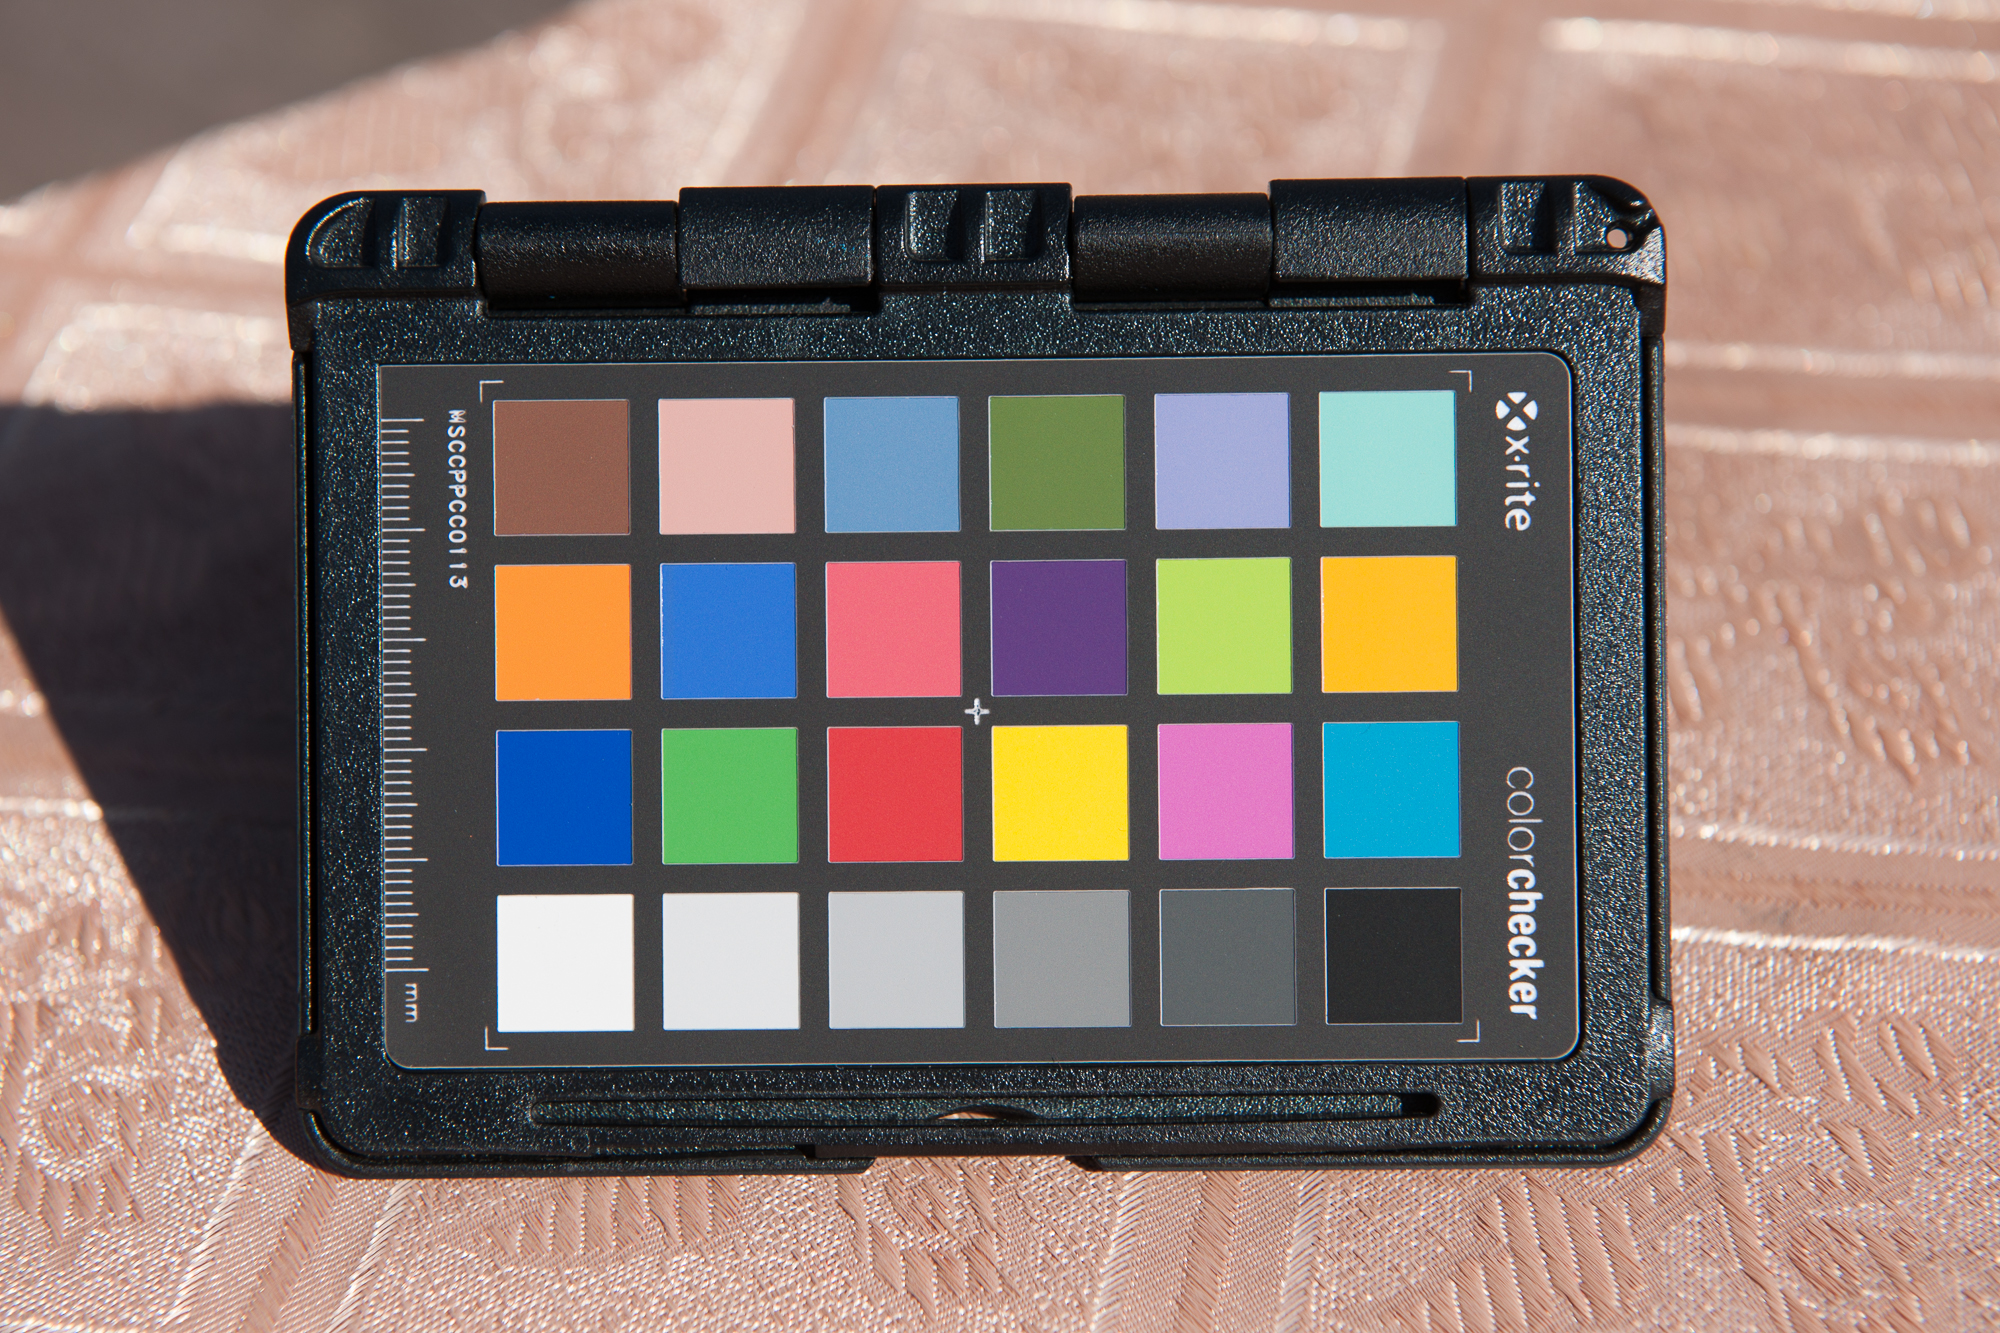 Get More Accurate Color With Camera Calibration Digital Just How Do You Make A Sensor Photography Review